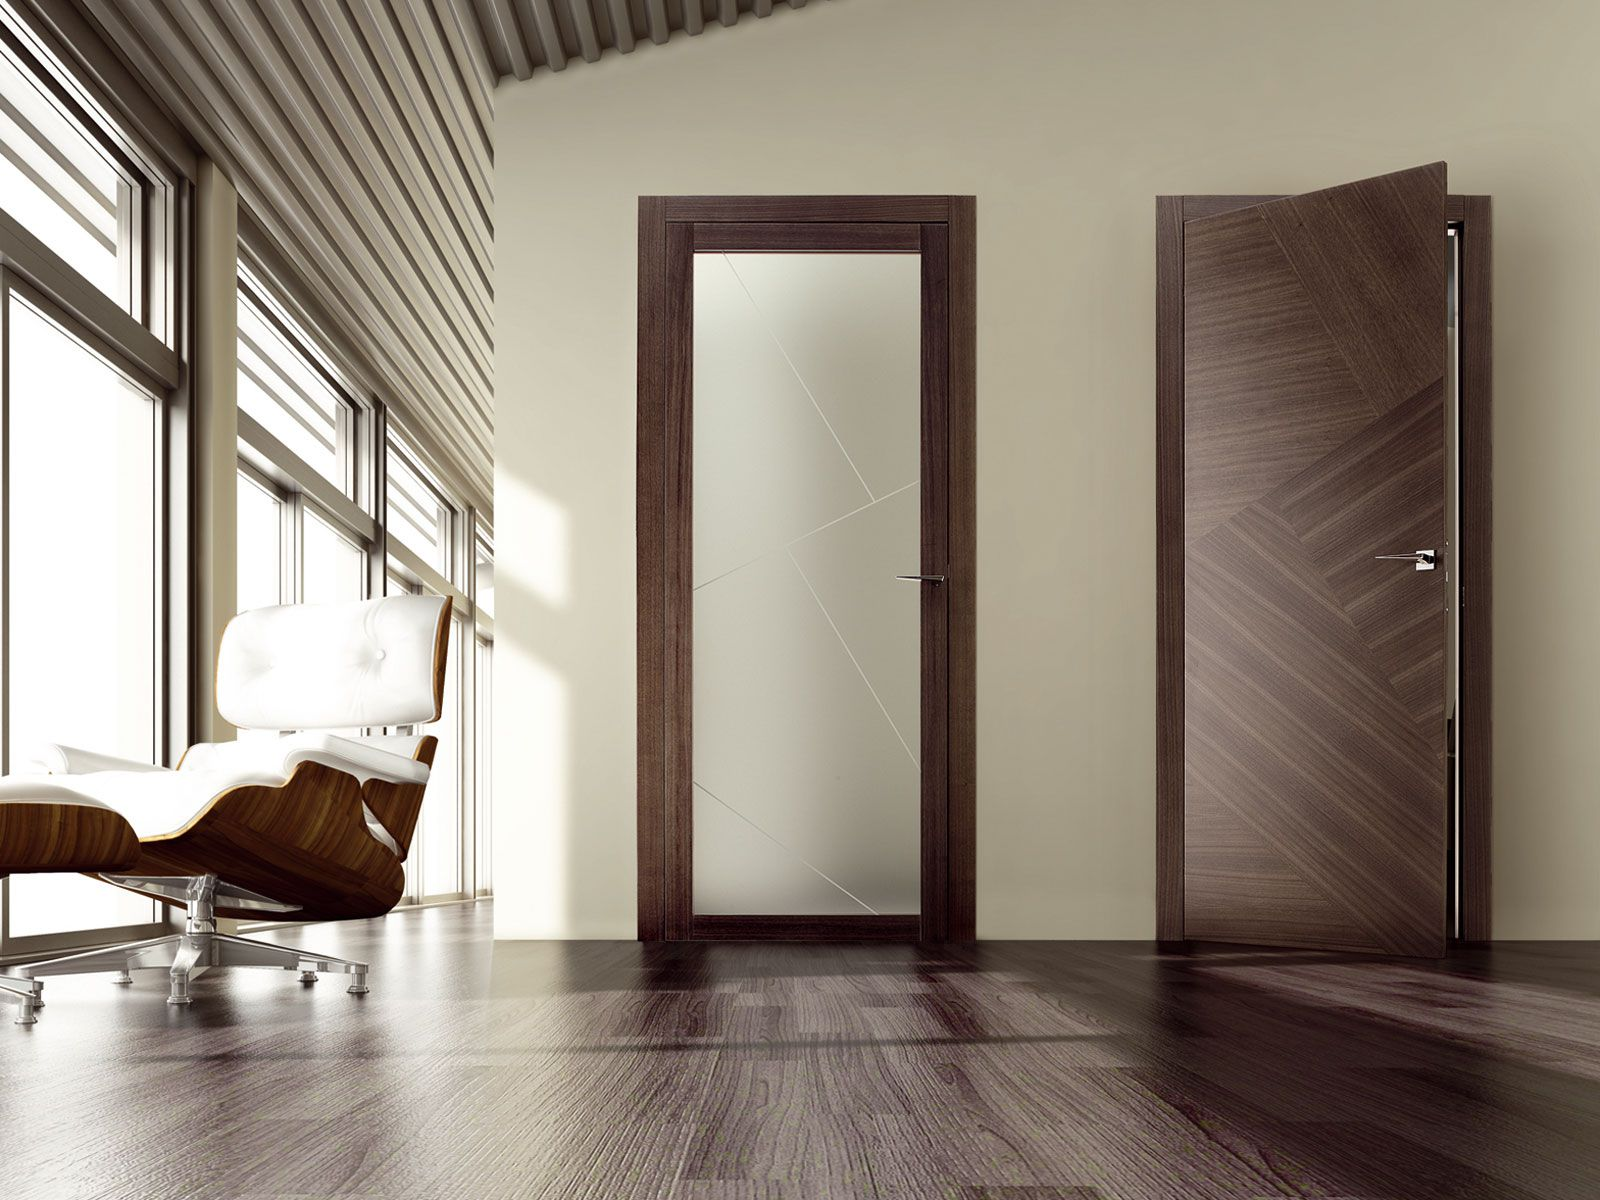 Modern interior design with veneered doors (with glass and without glass)